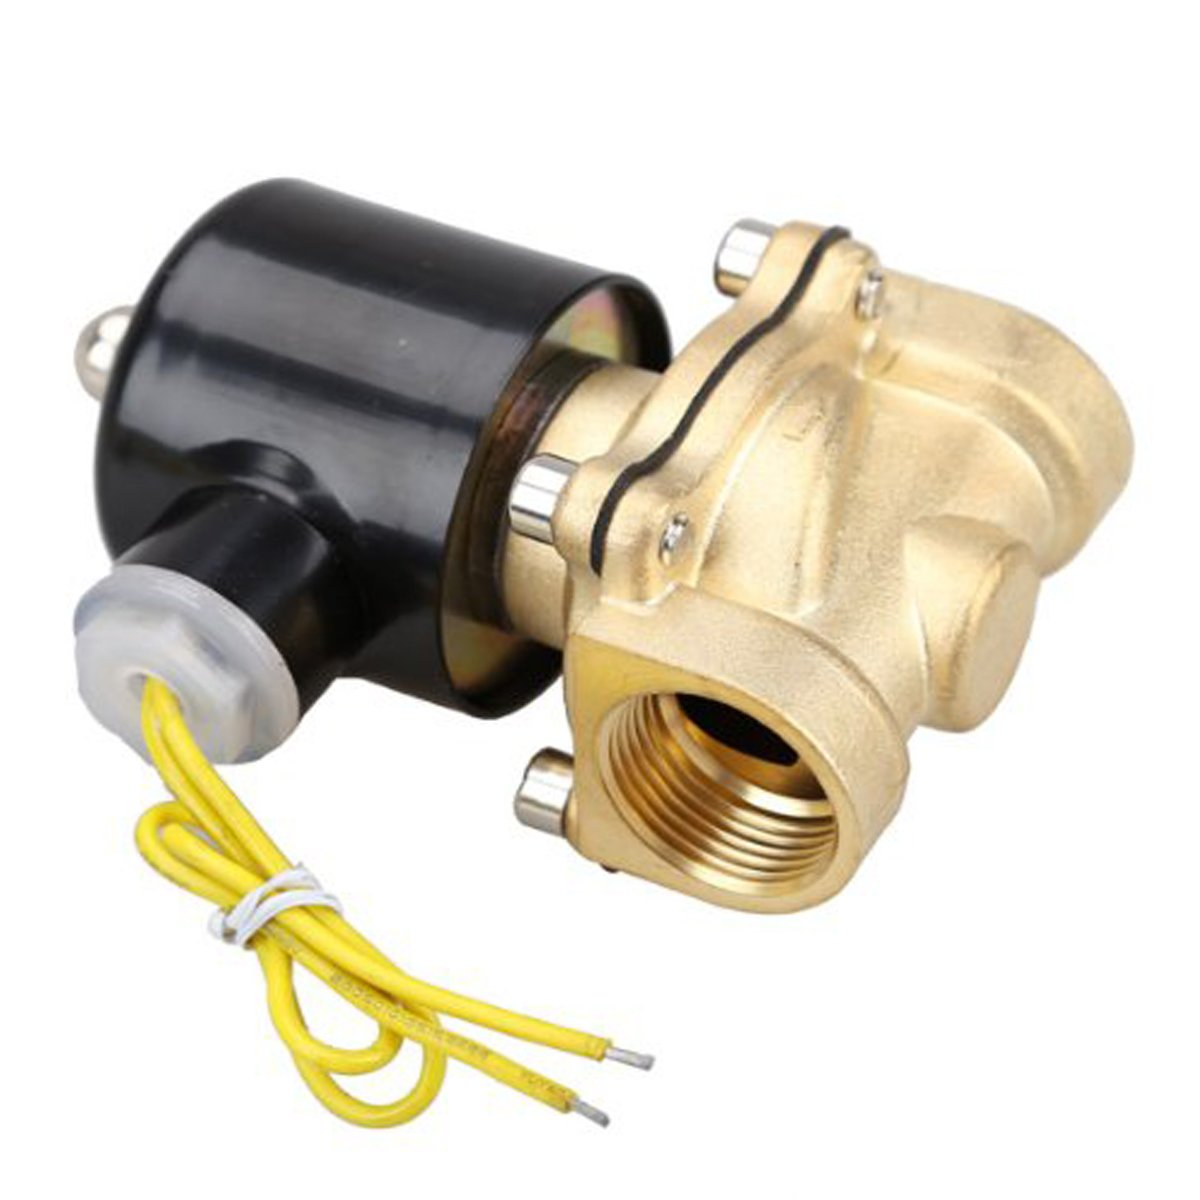 HSH-Flo Brass 1/4' DN8 12VDC NPT 2 Way Normally Closed Electrical Solenoid Valve